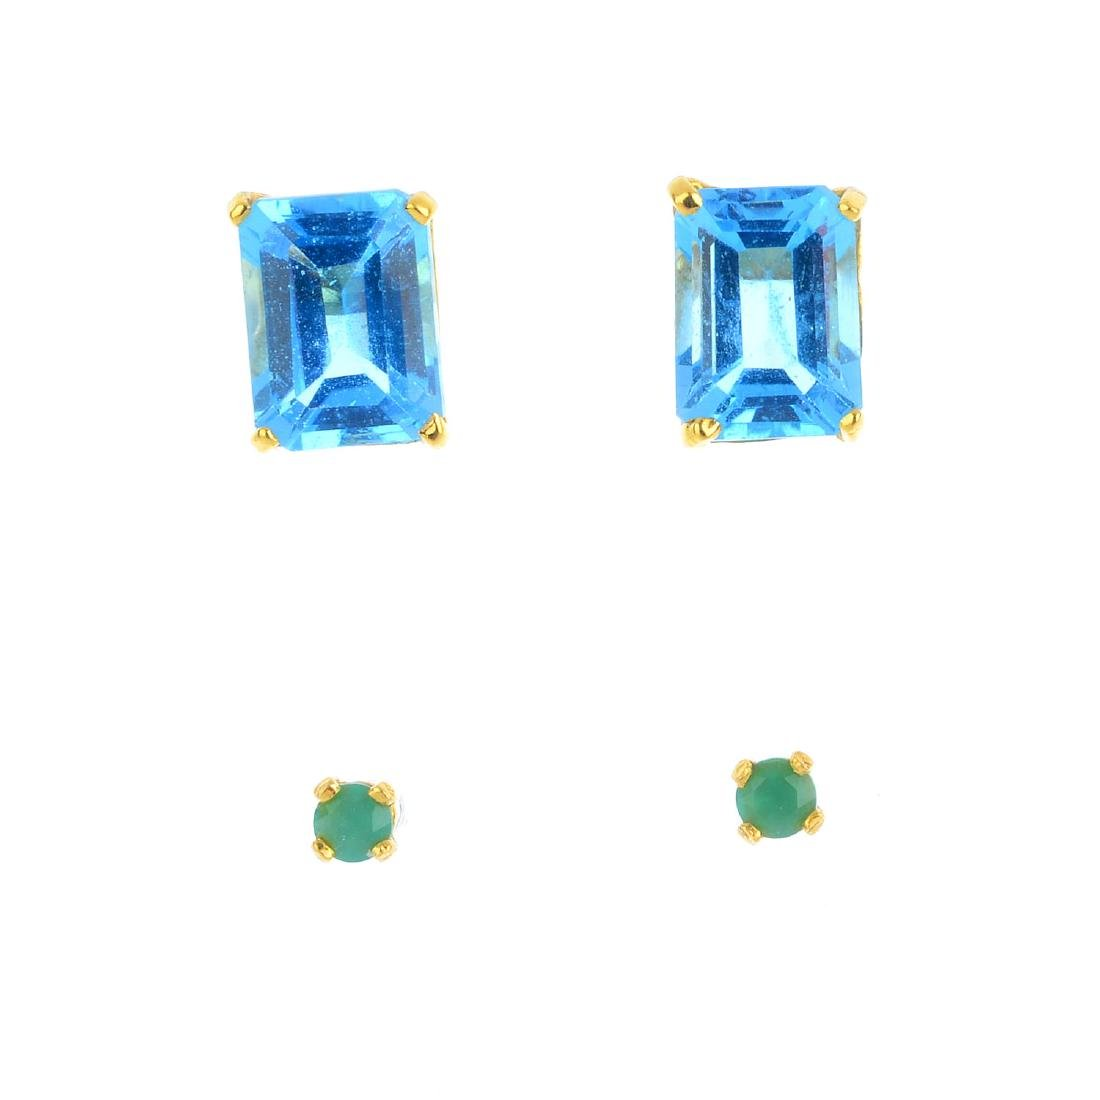 Two pairs of gem-set stud earrings. To include a pair